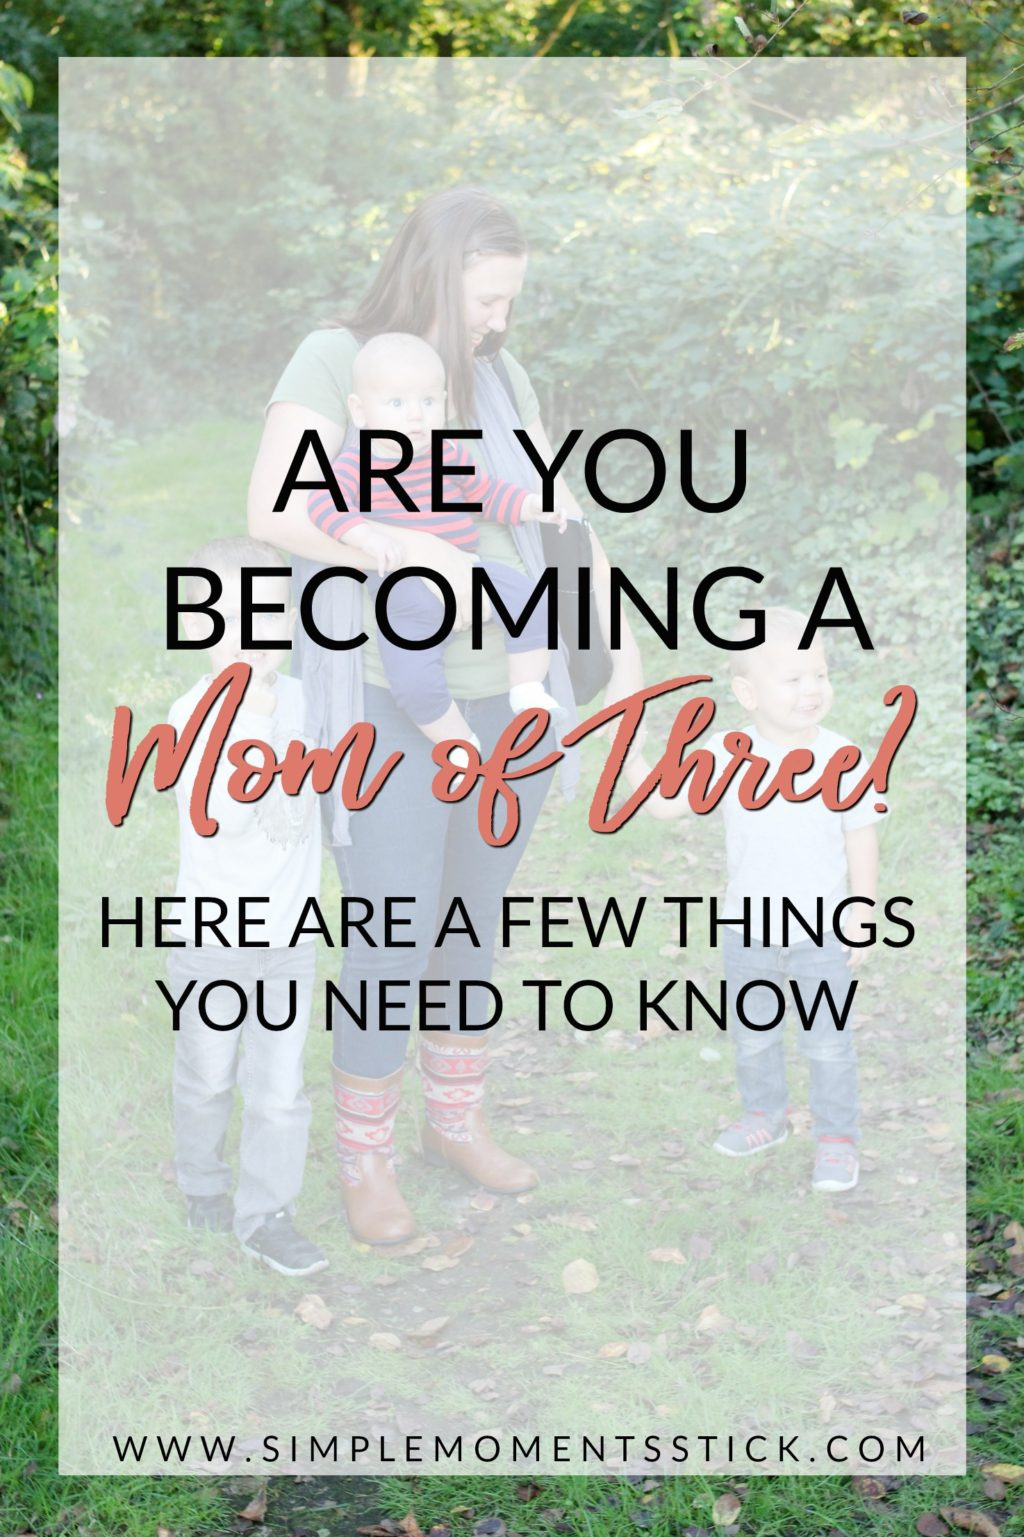 Becoming a mom of three. Third time mom tips. Things you need to know before having your third child